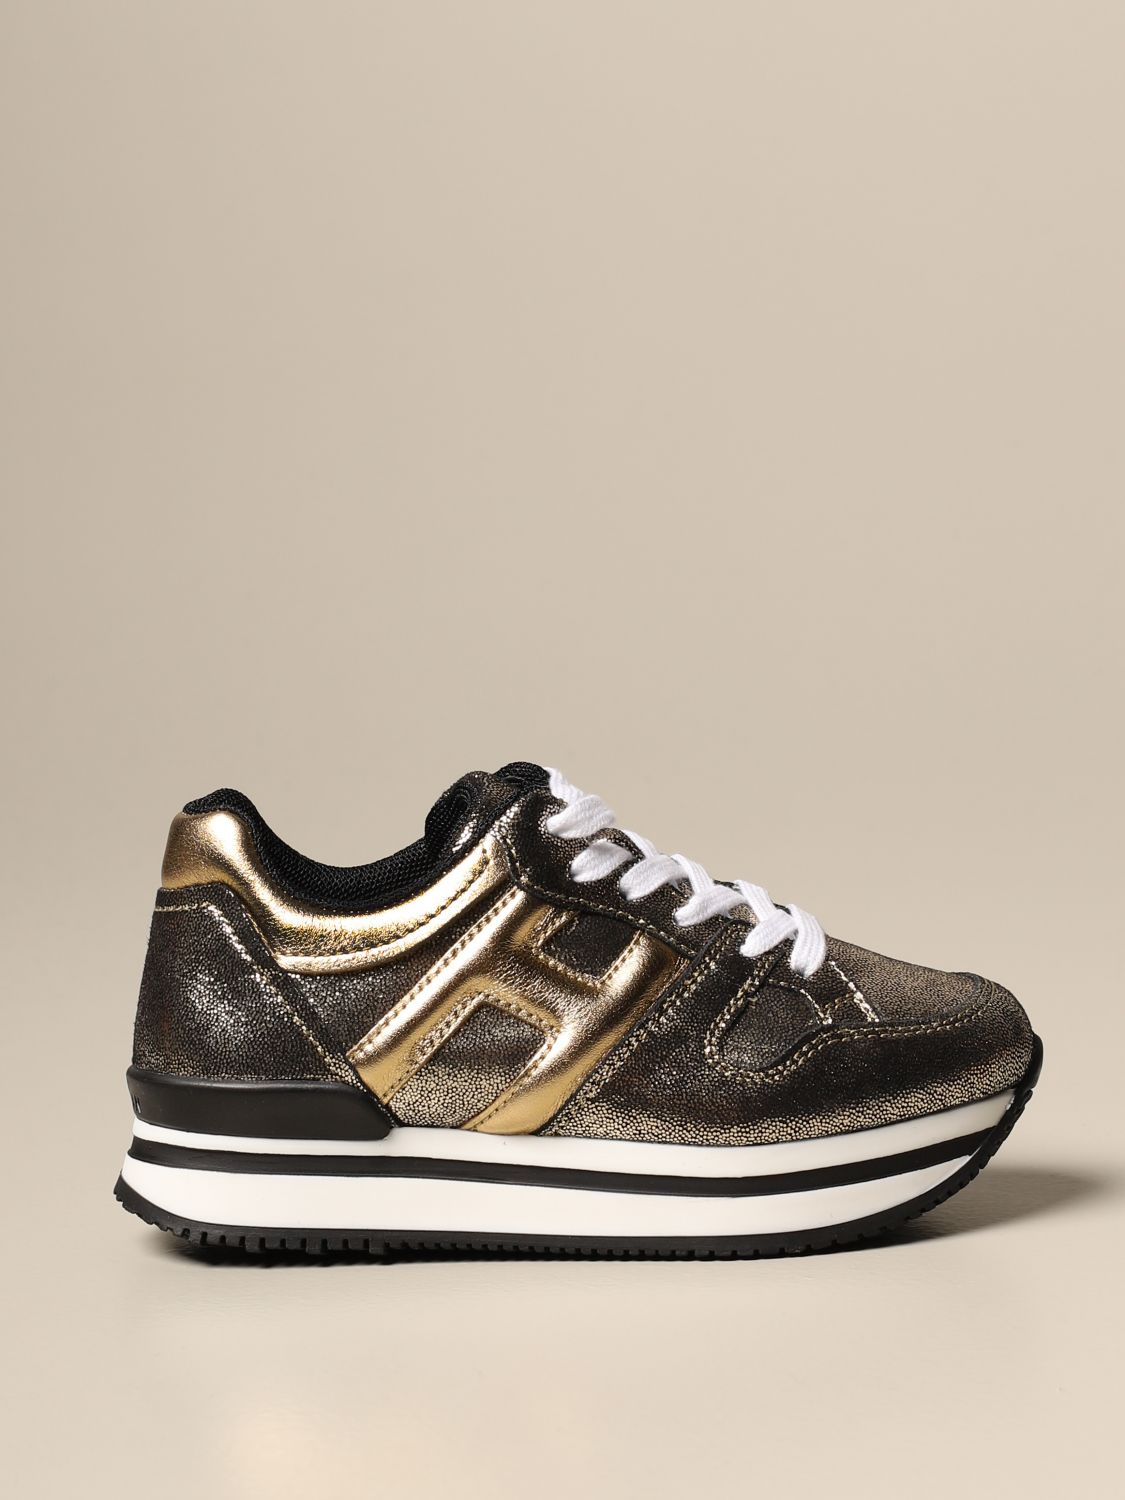 H222 Hogan laminated leather sneakers